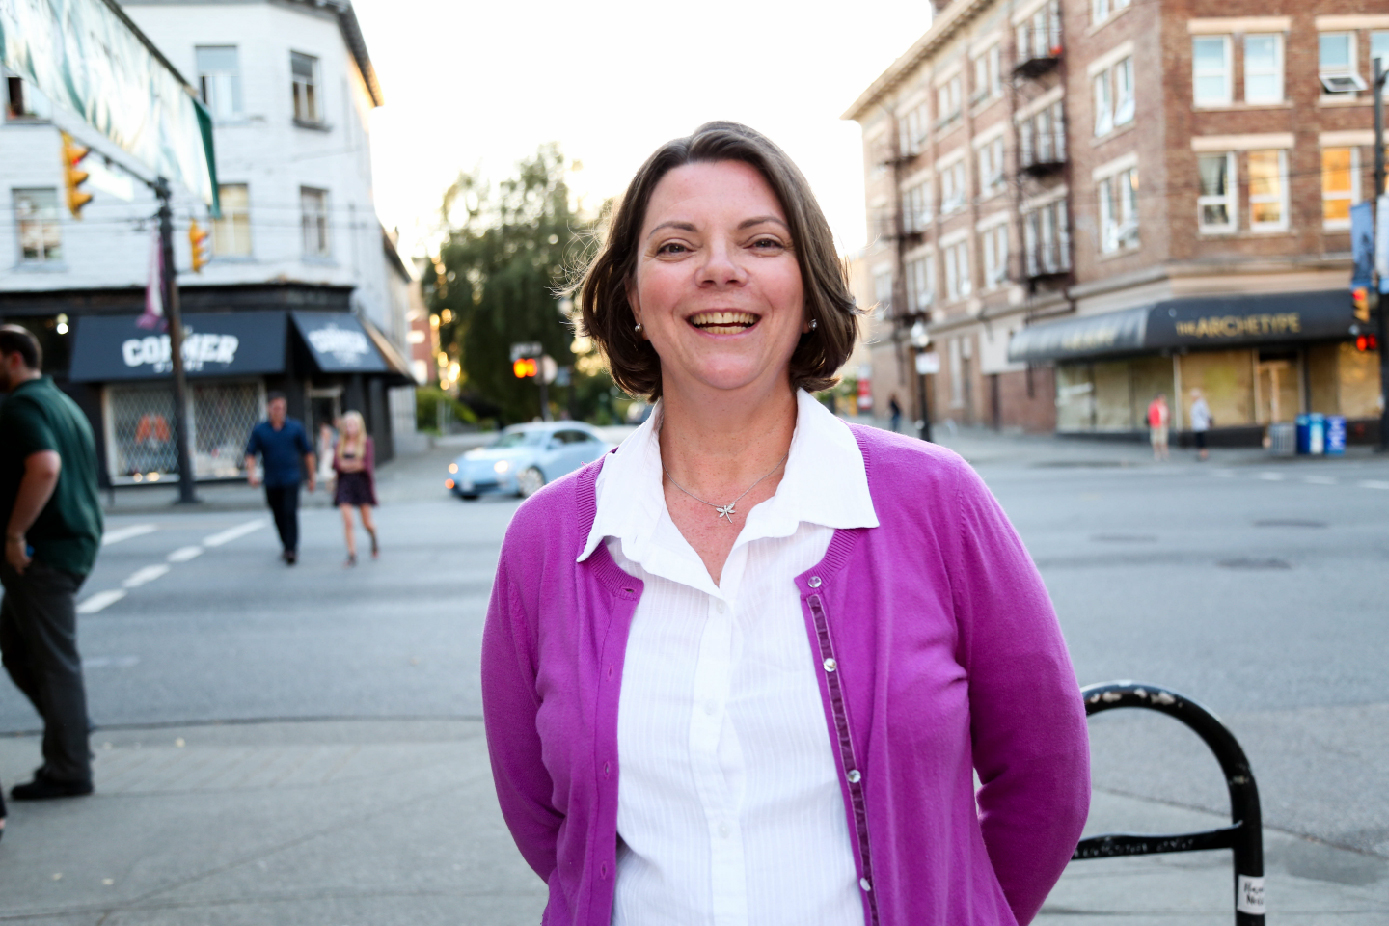 Erica Jaff Candidate for Vancouver School Board